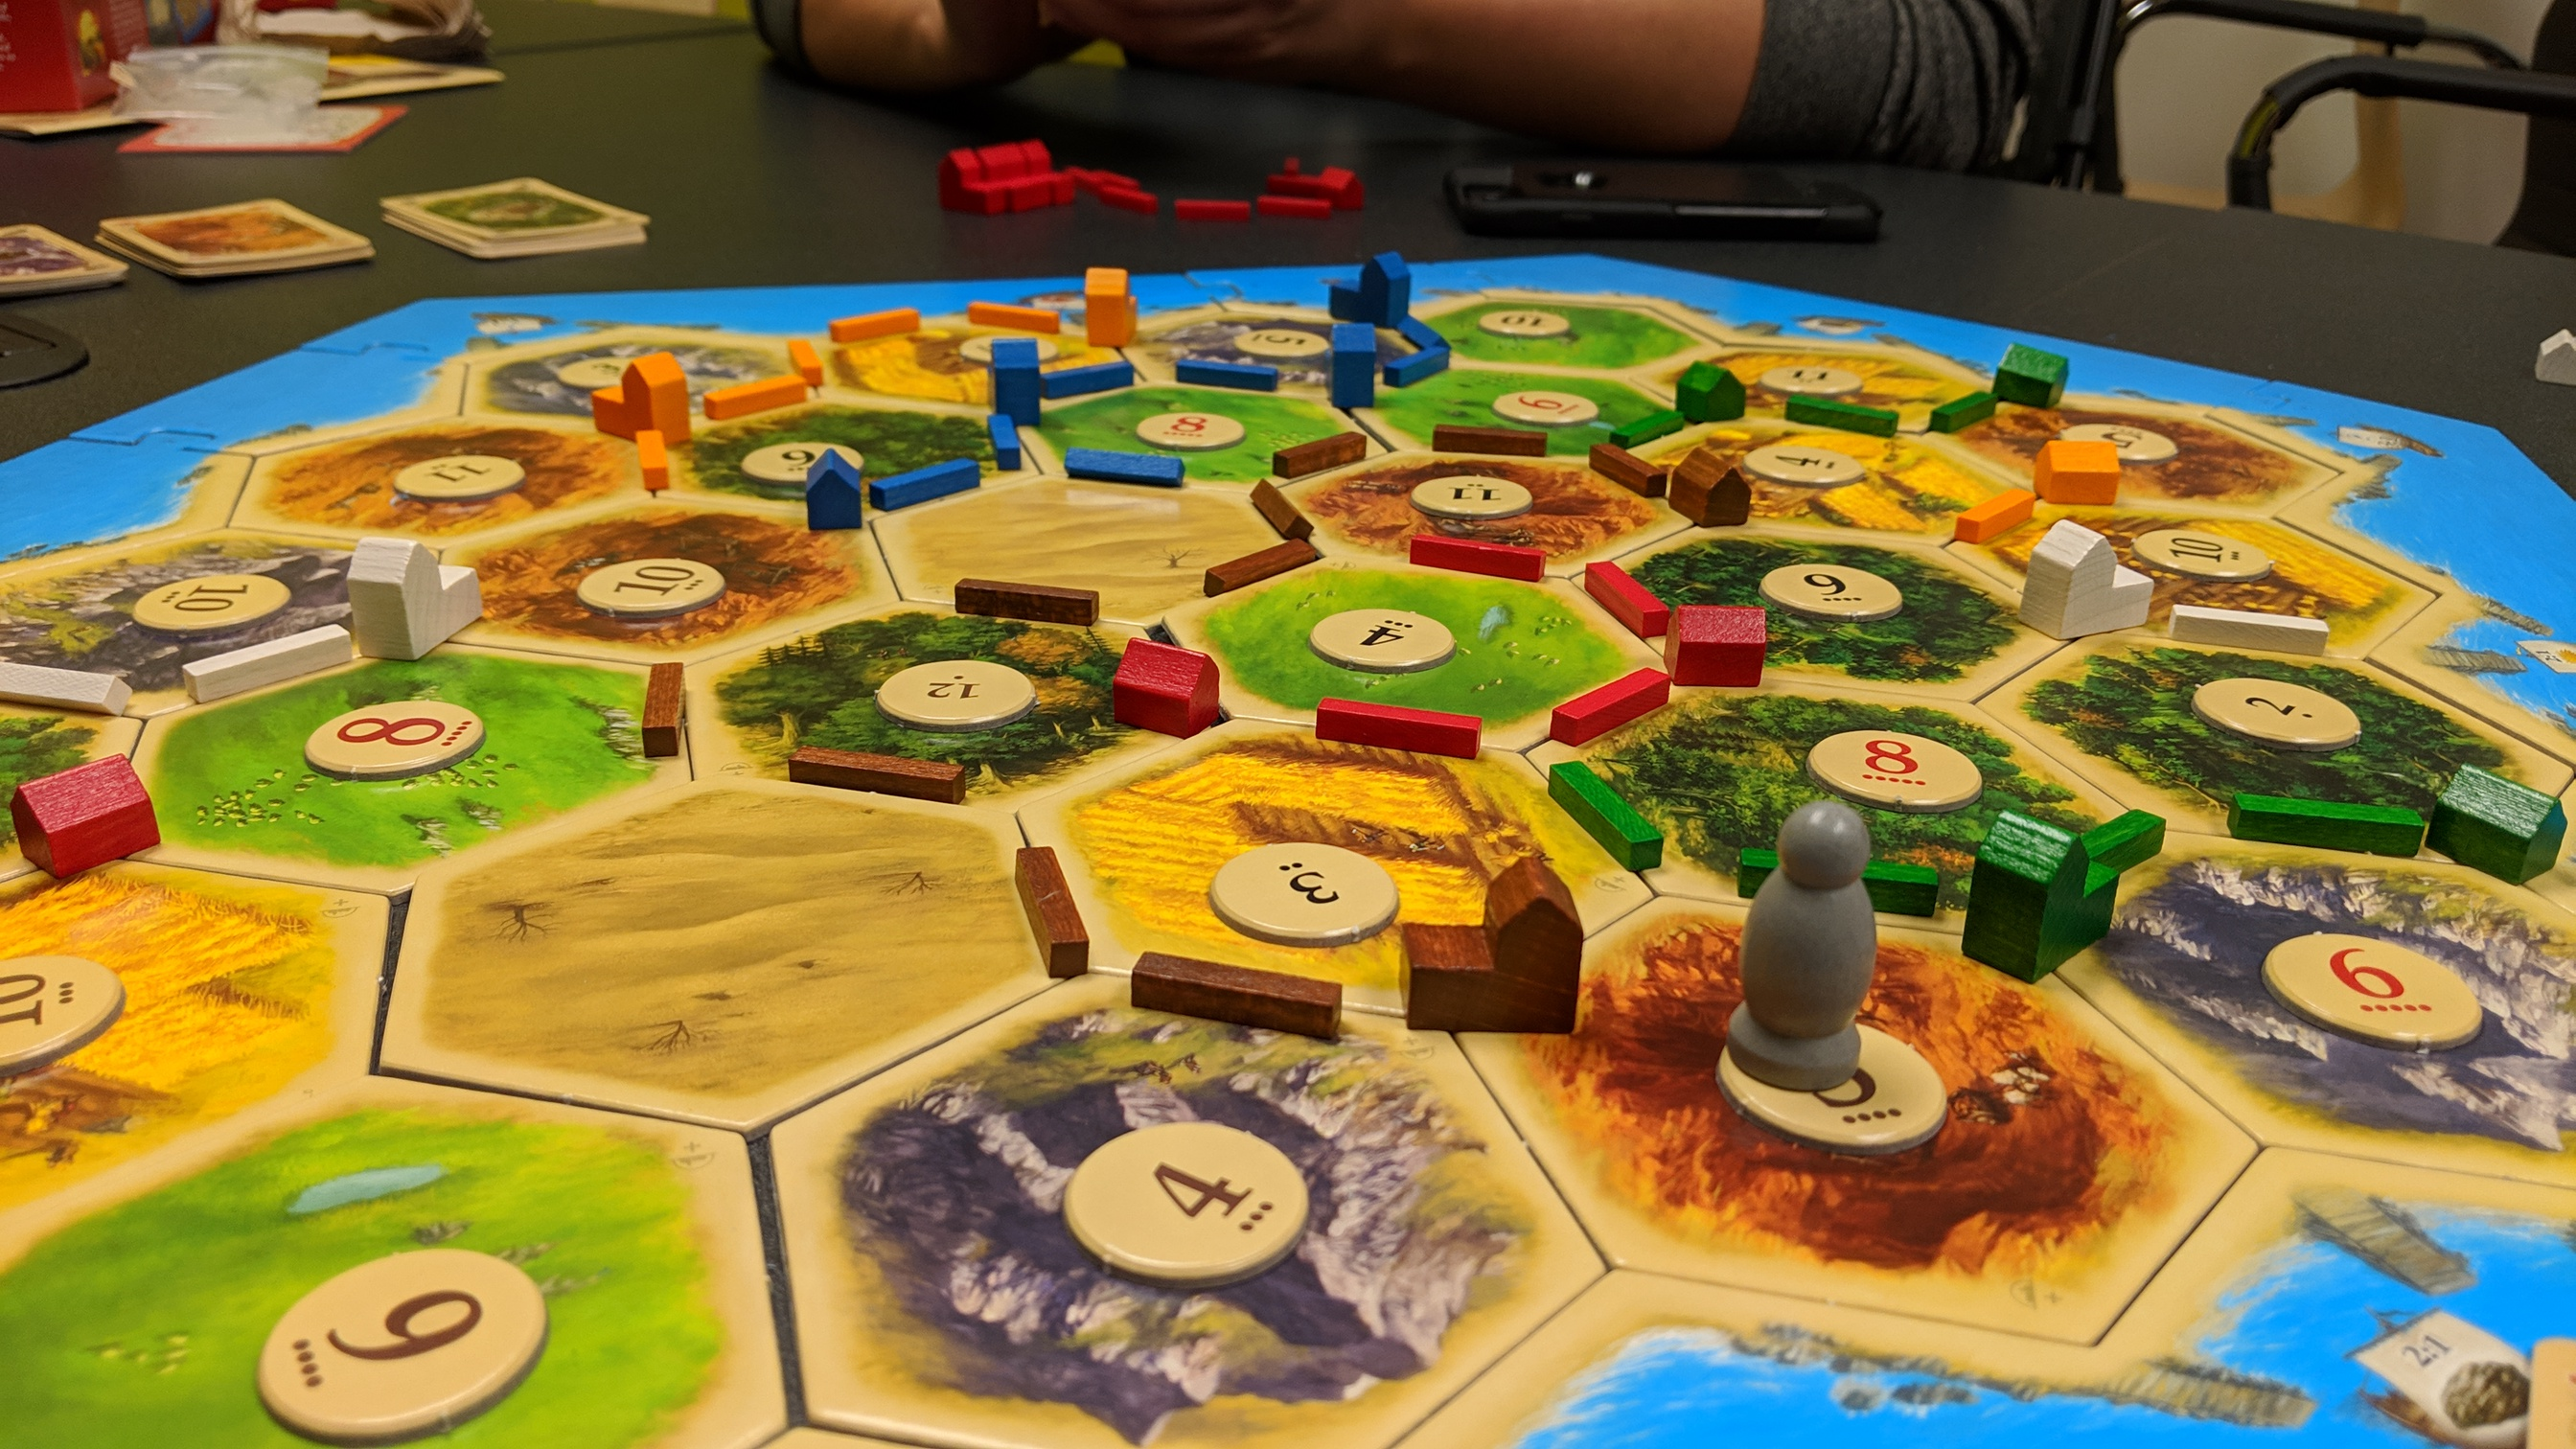 File:A game of Settlers of Catan.jpg - Wikimedia Commons